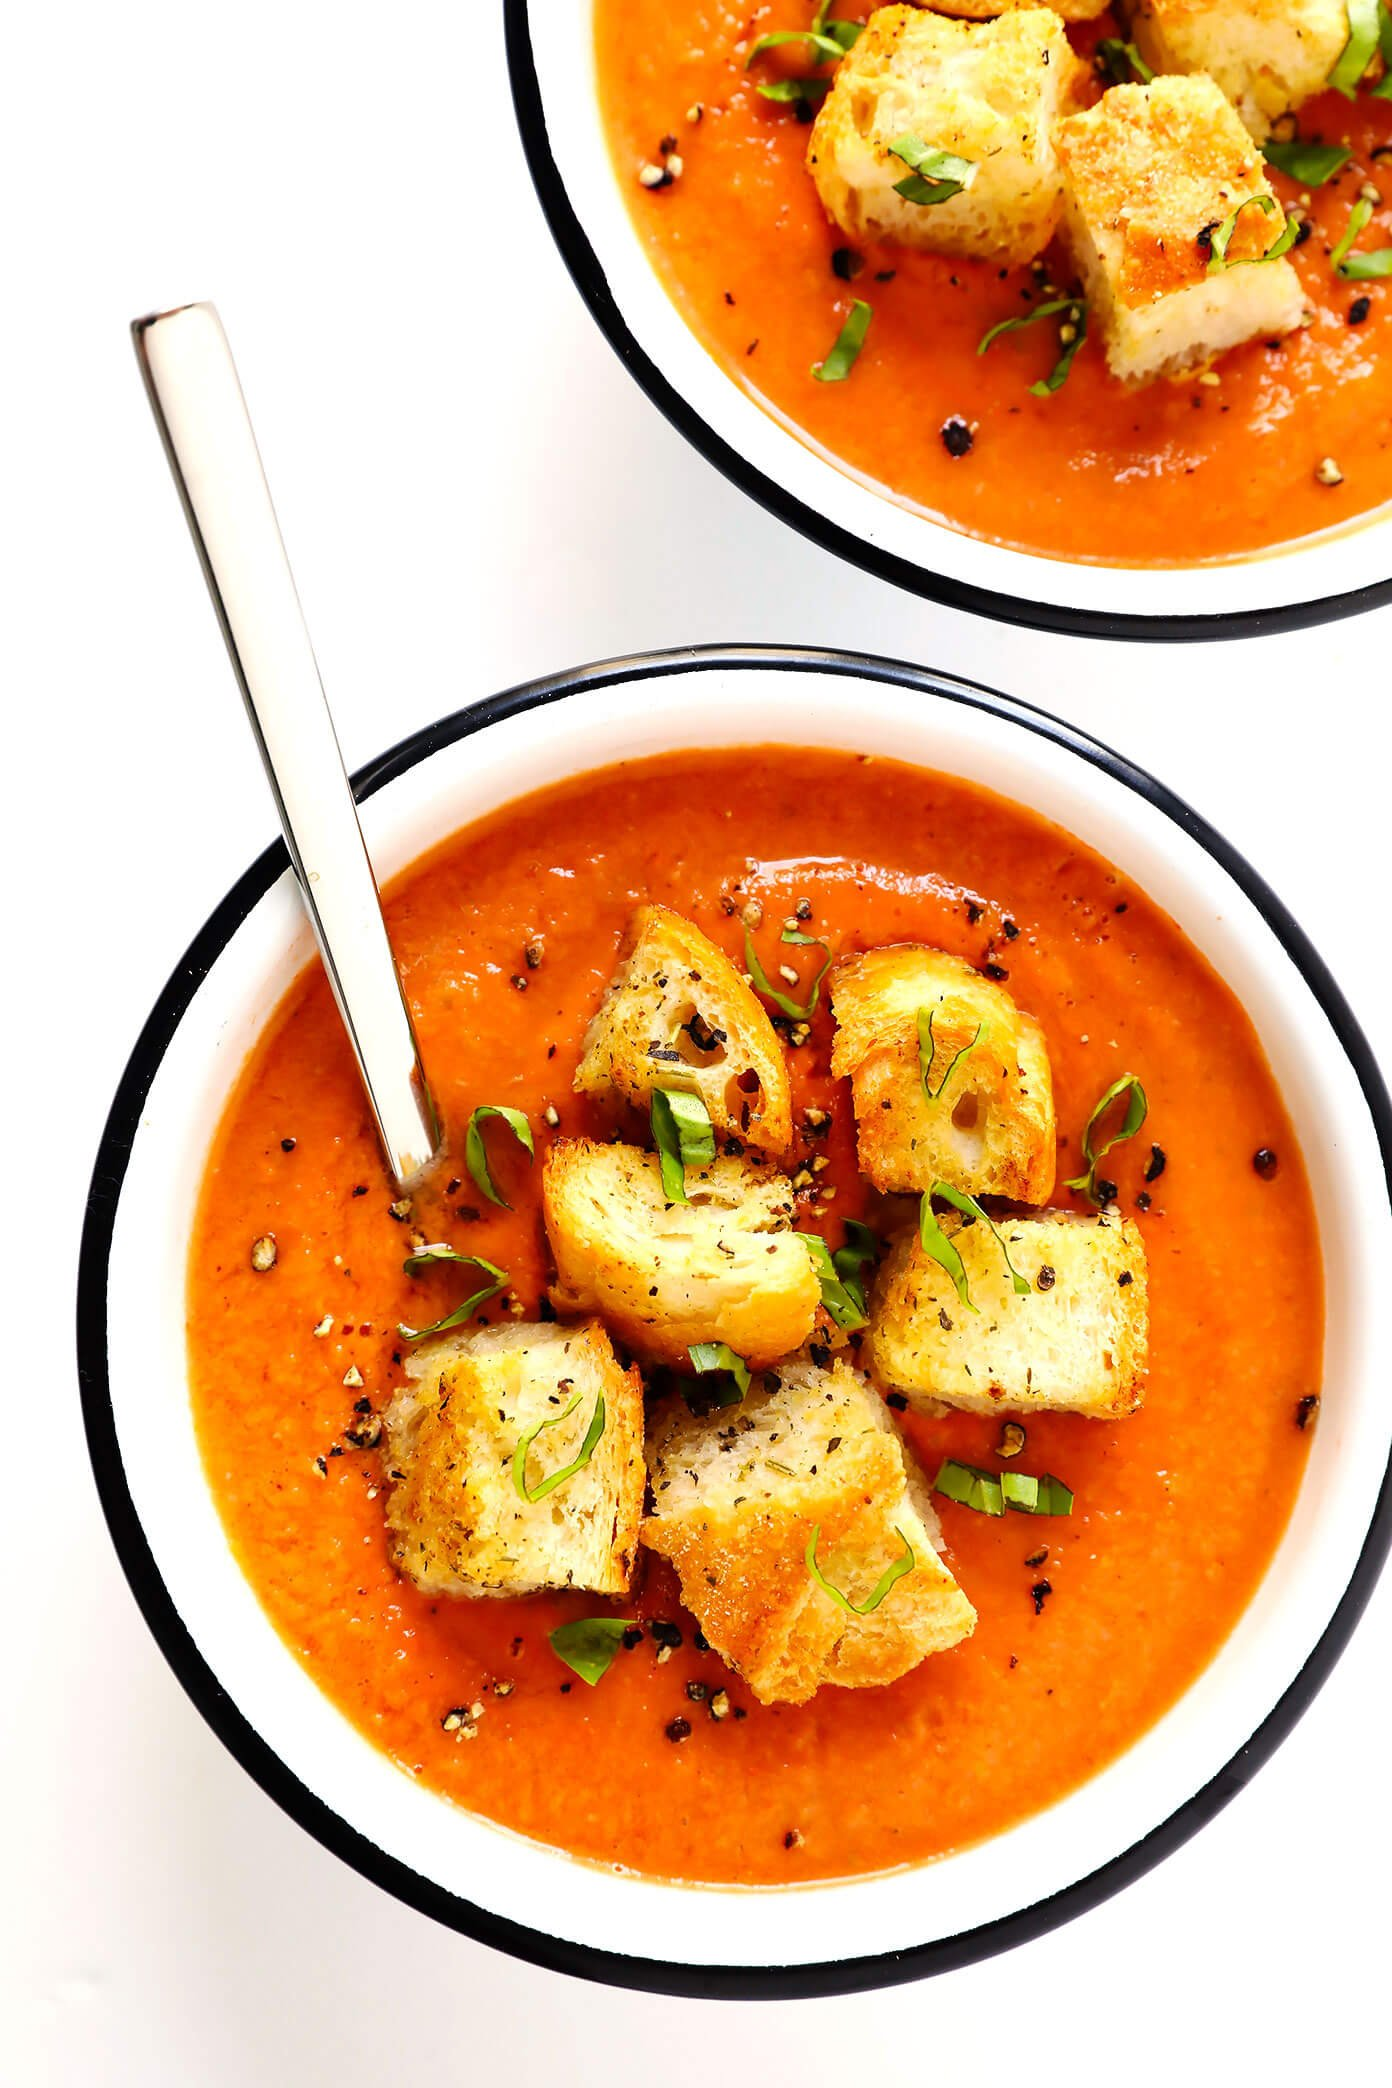 Authentic Gazpacho with Homemade Croutons